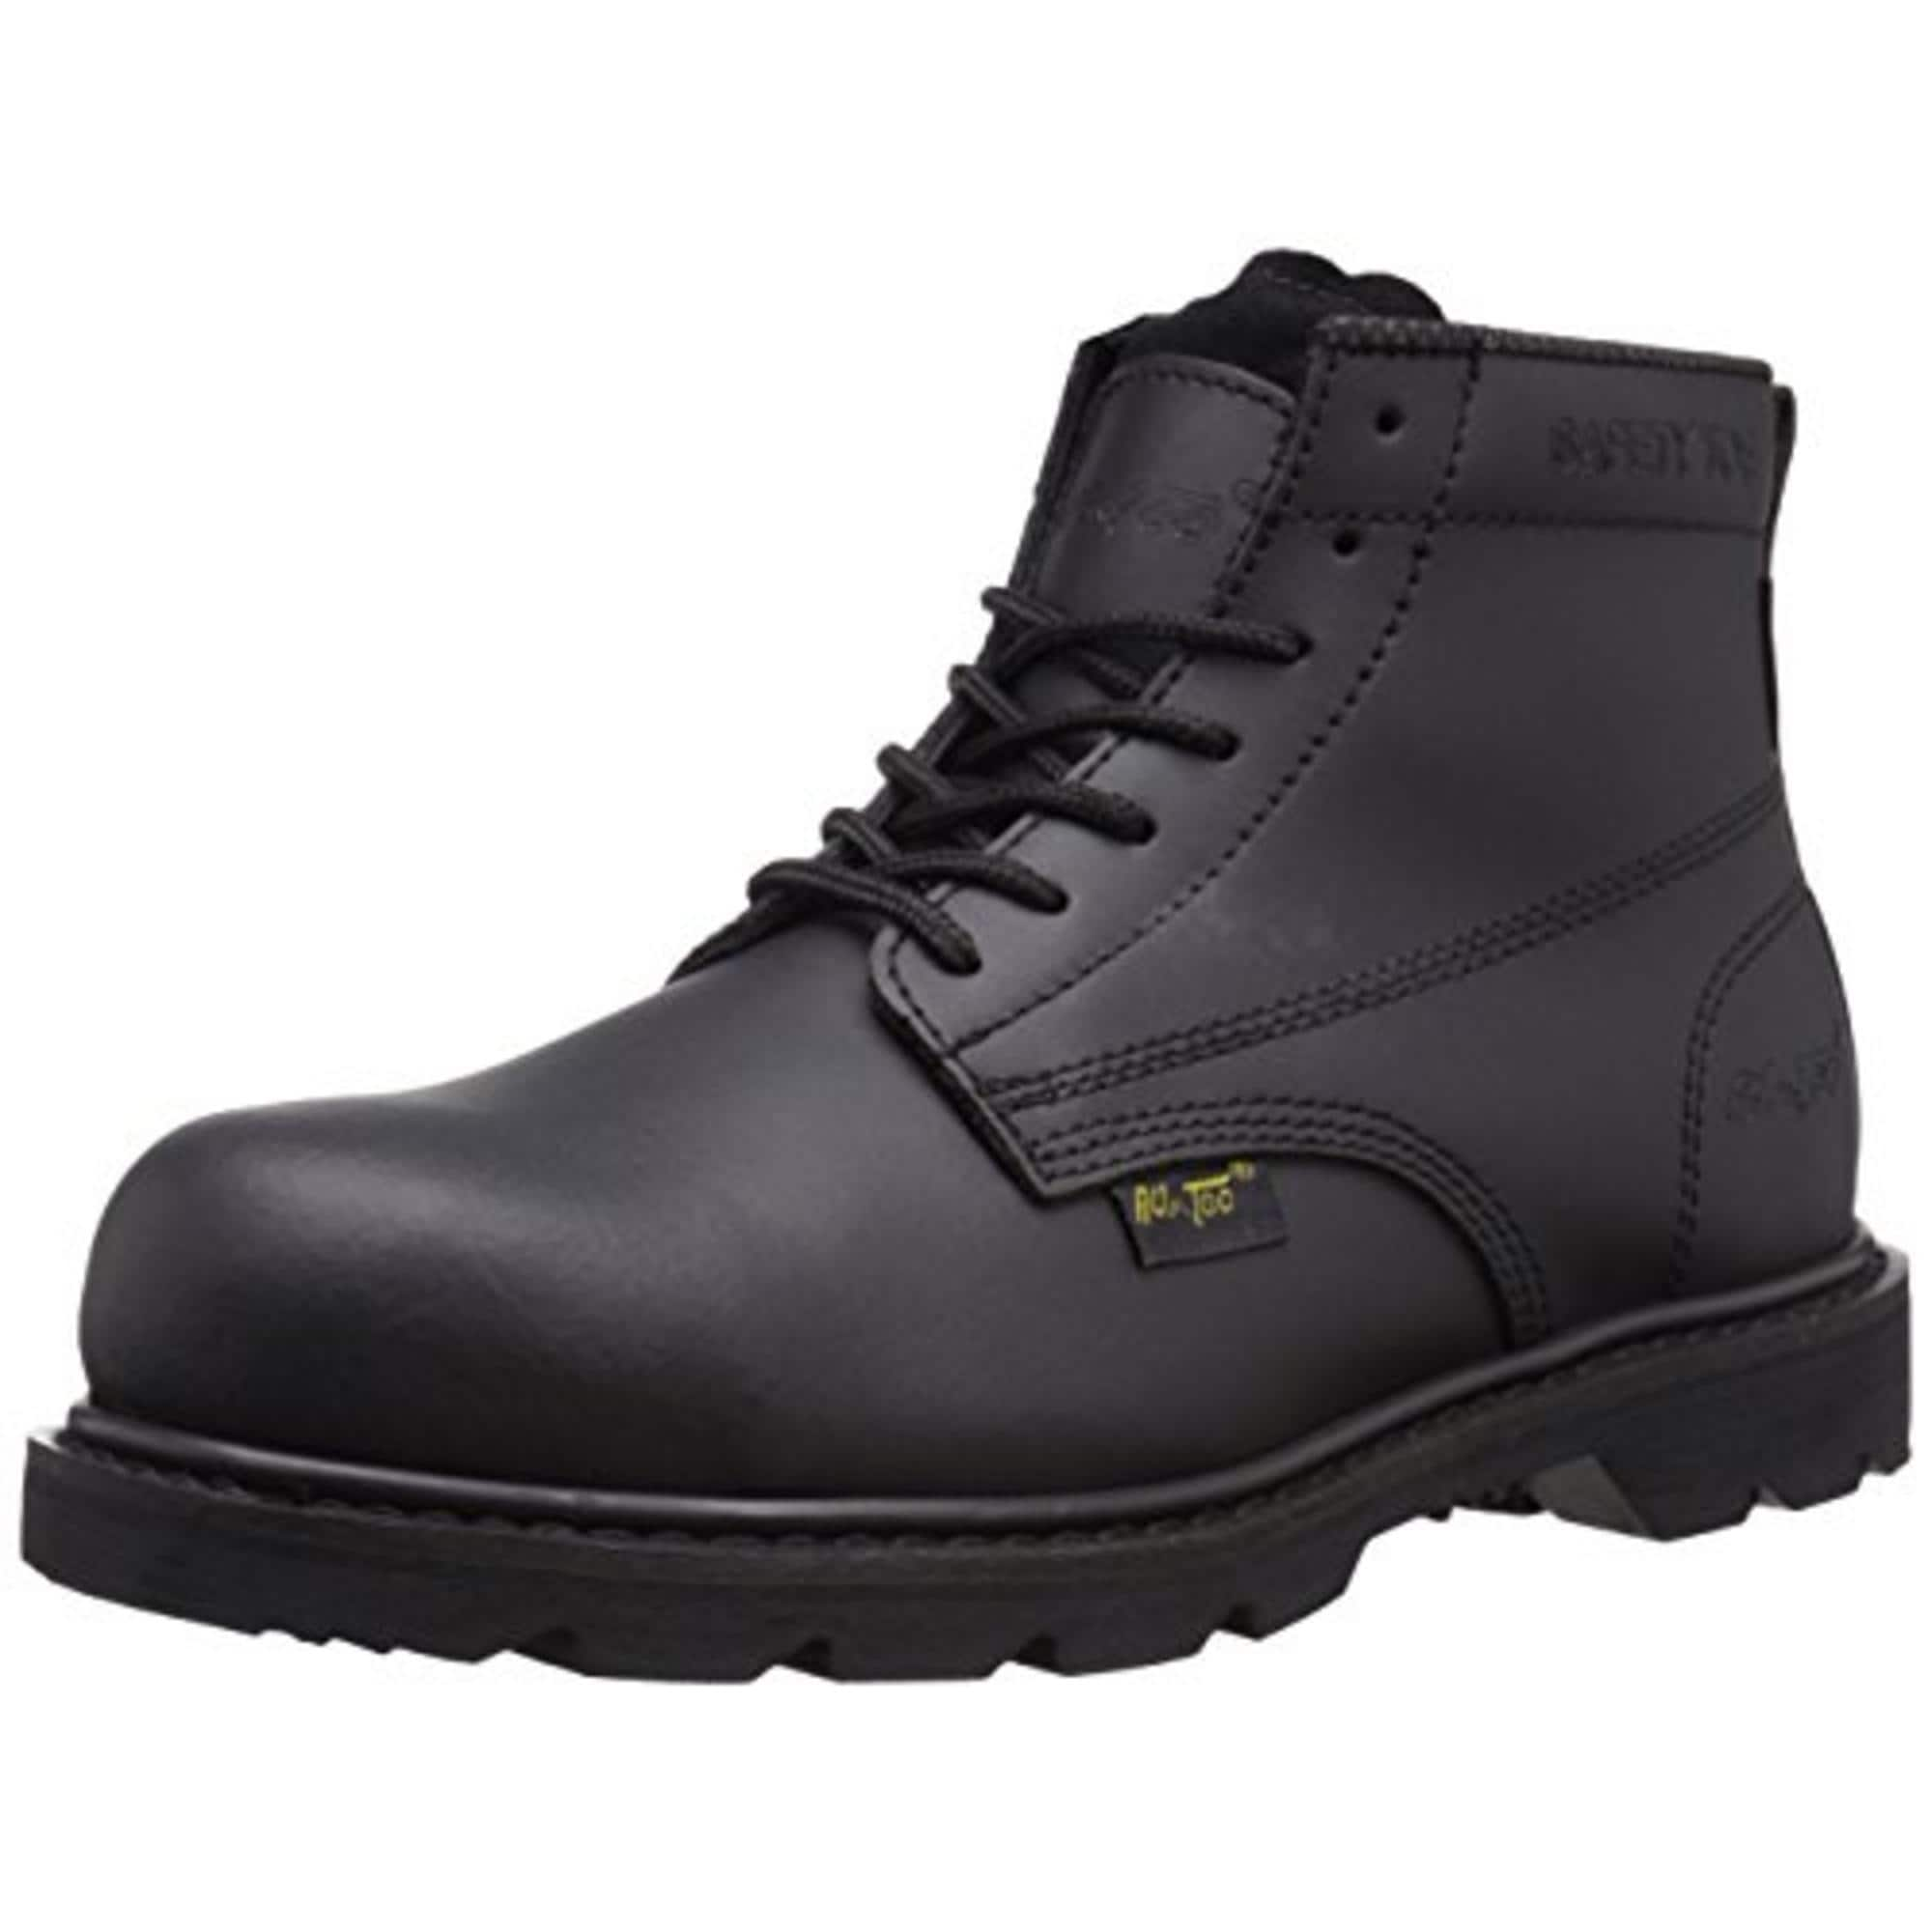 Shop Adtec Mens Work Boots Leather